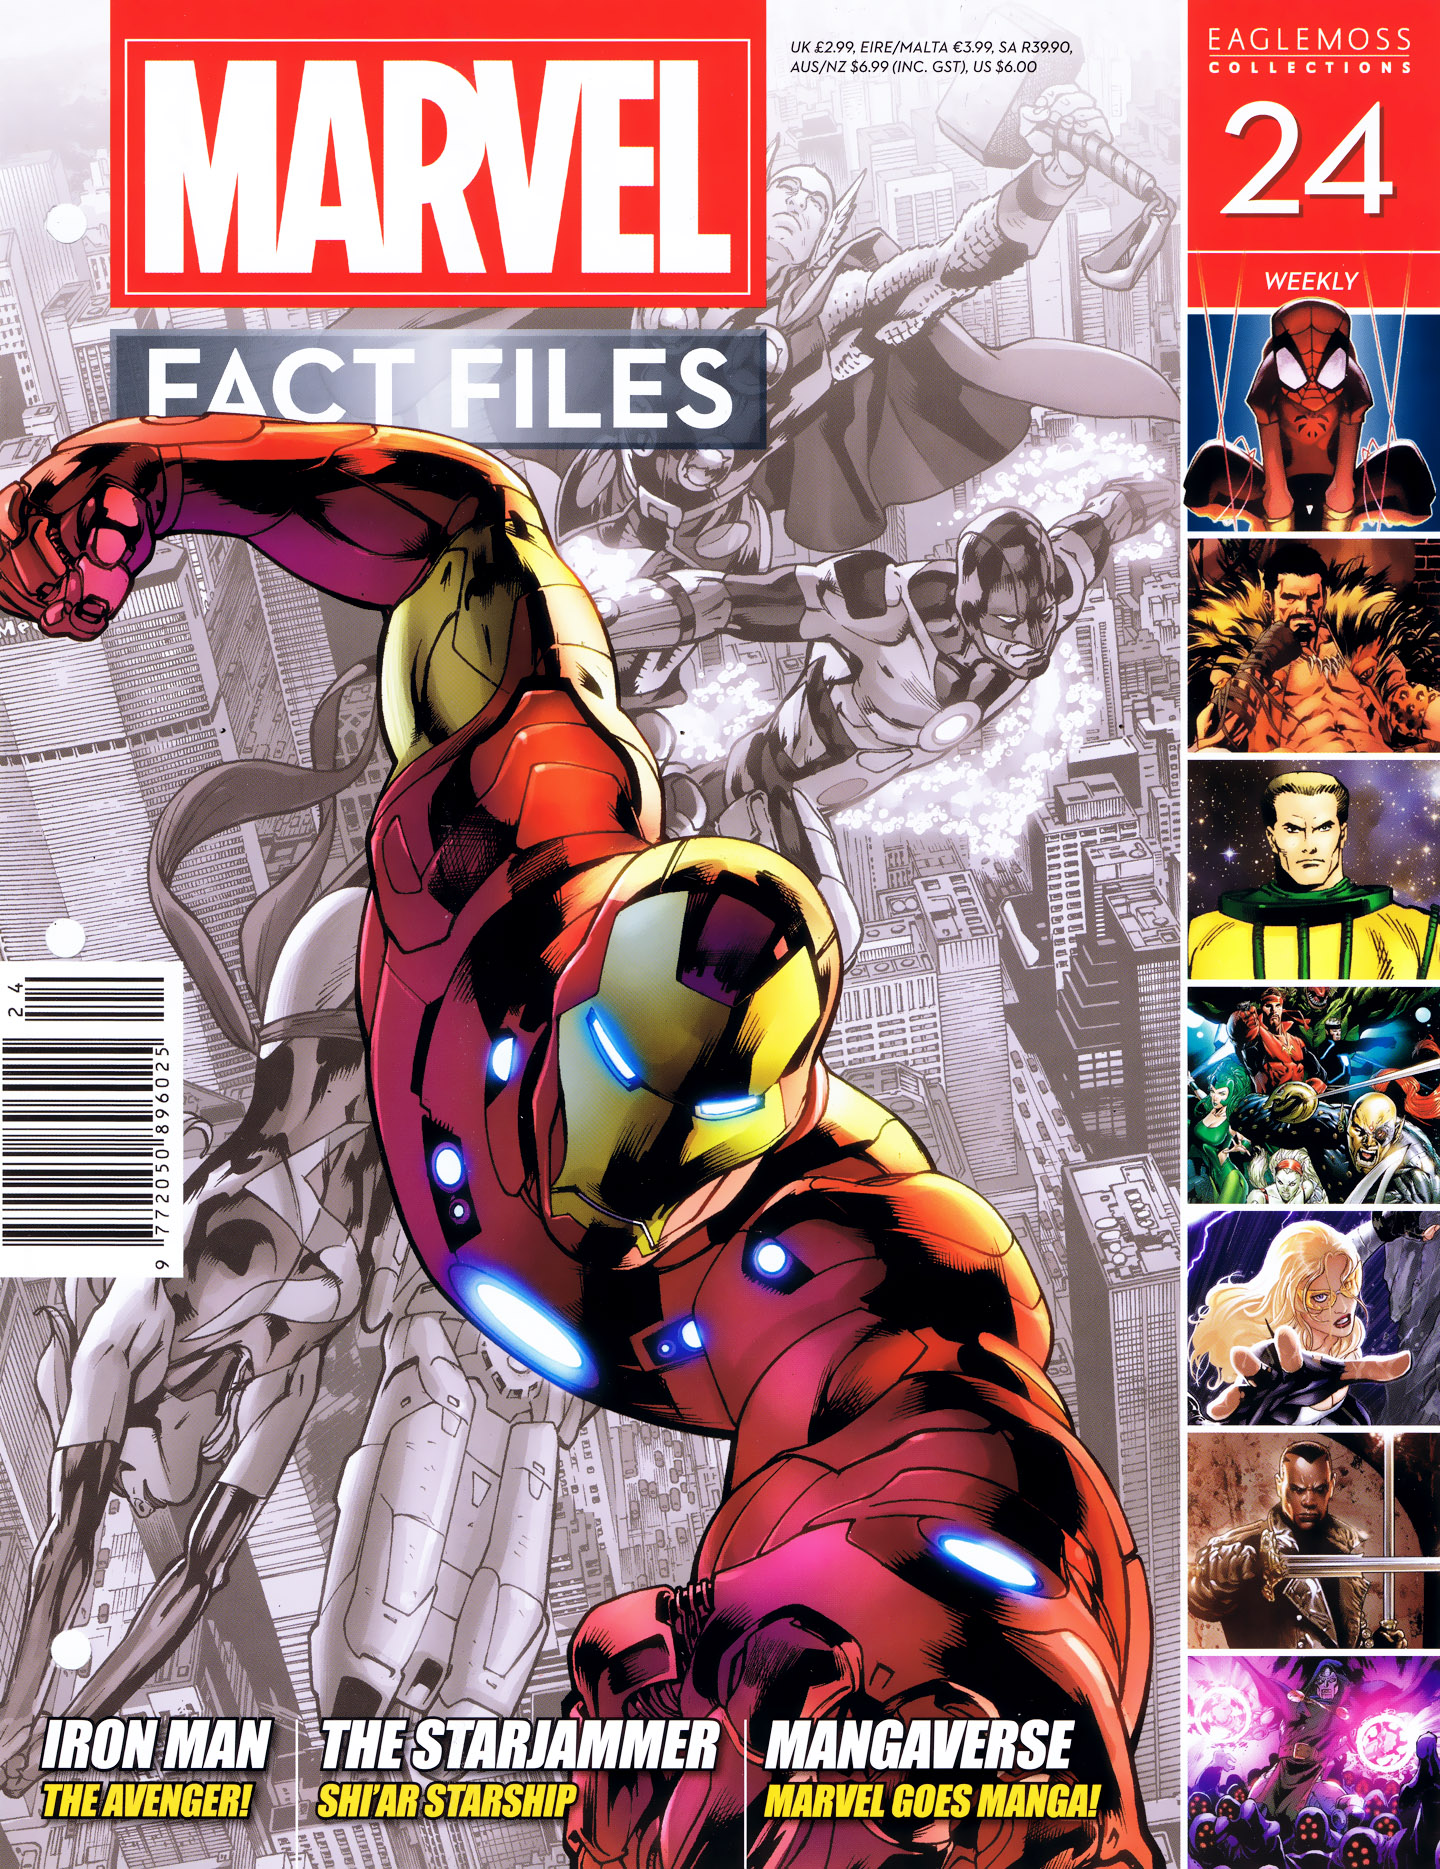 Marvel Fact Files 24 Page 1